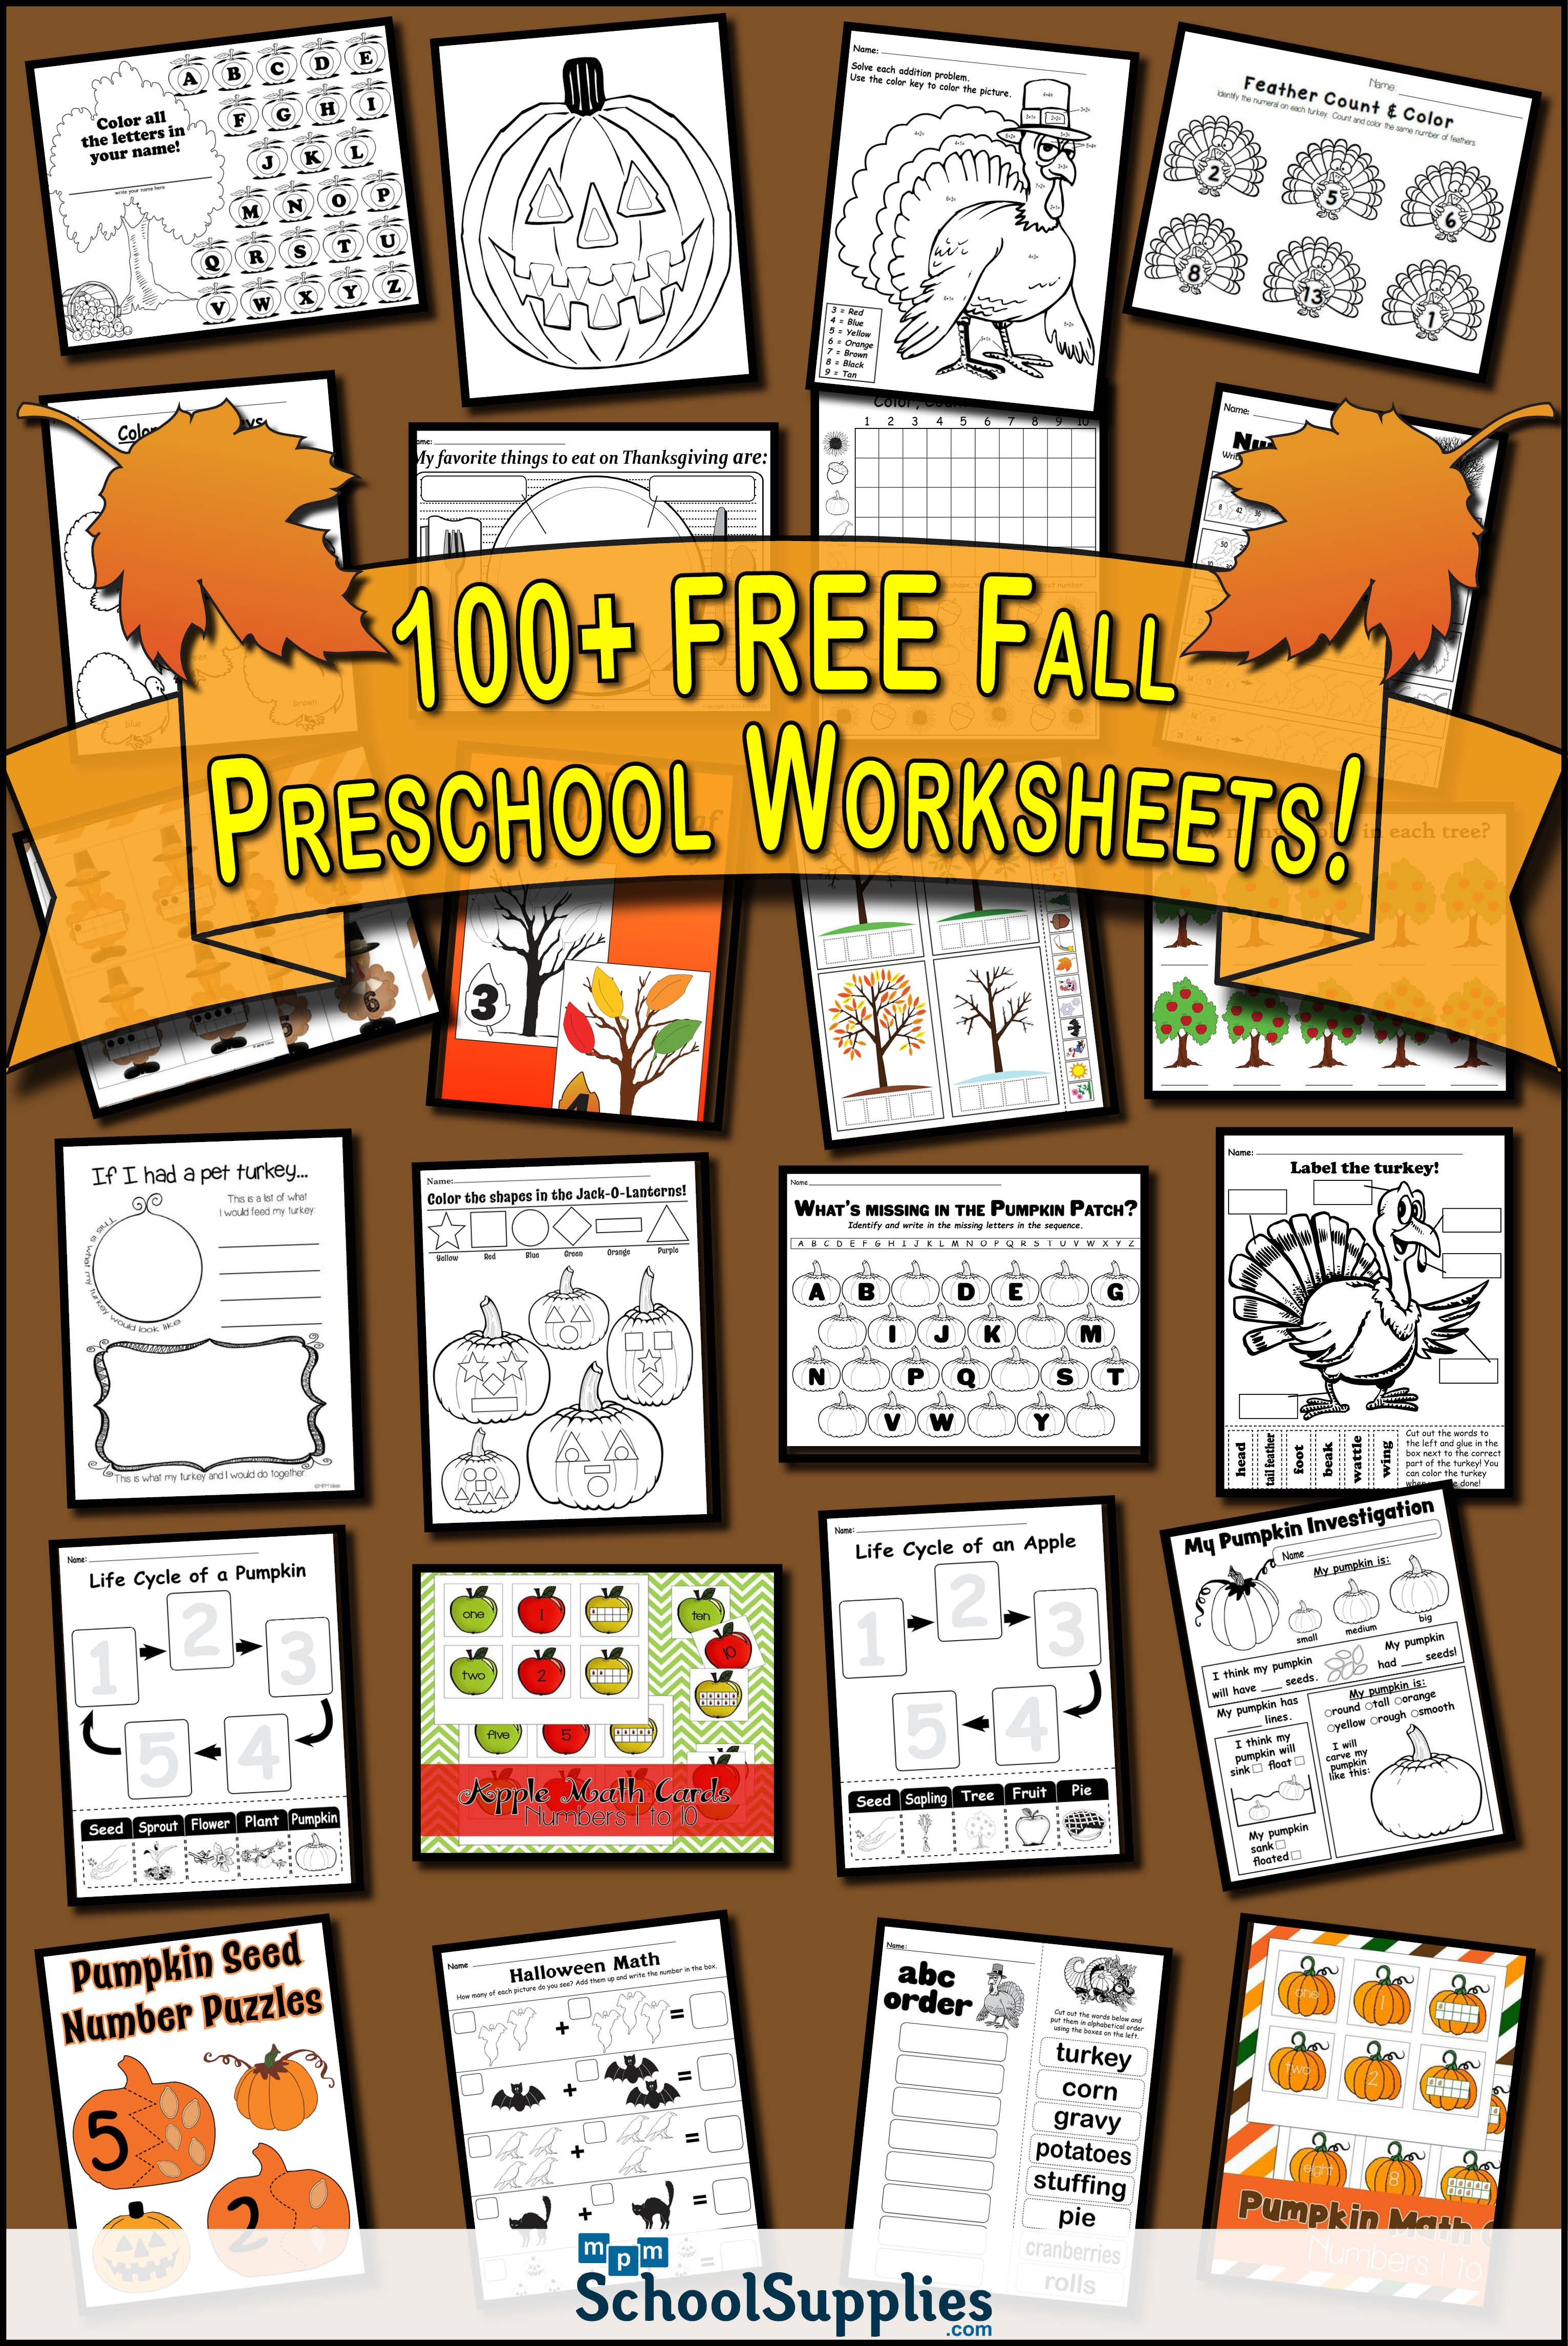 Over 100 Free Fall Preschool Worksheets Our Fall